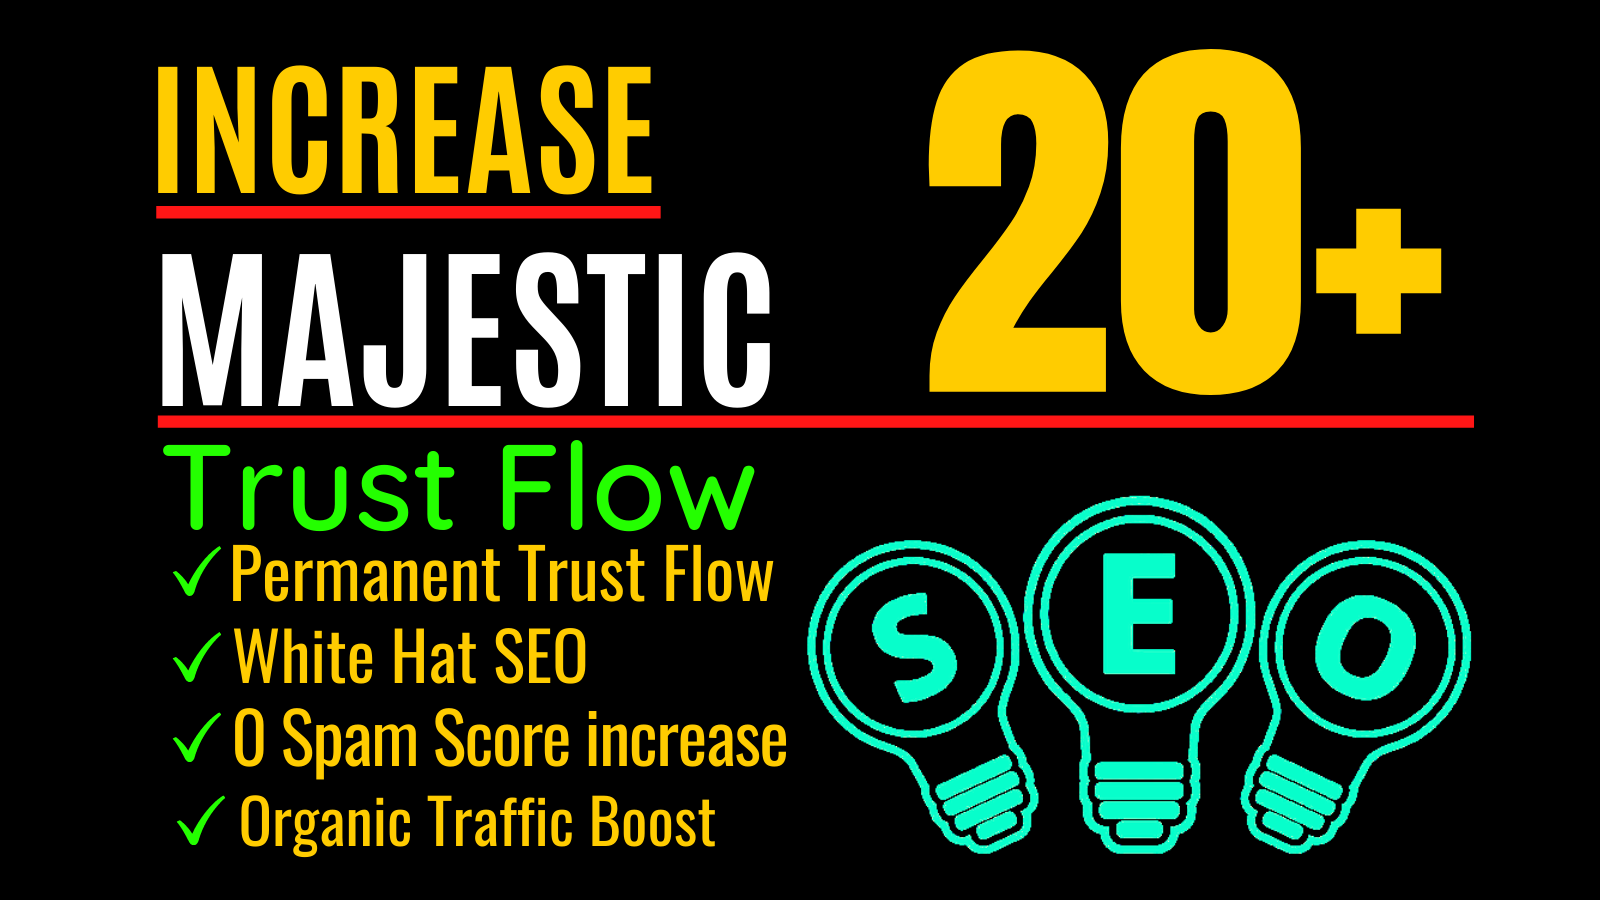 I will do increase majestic trust flow increase tf 20 plus